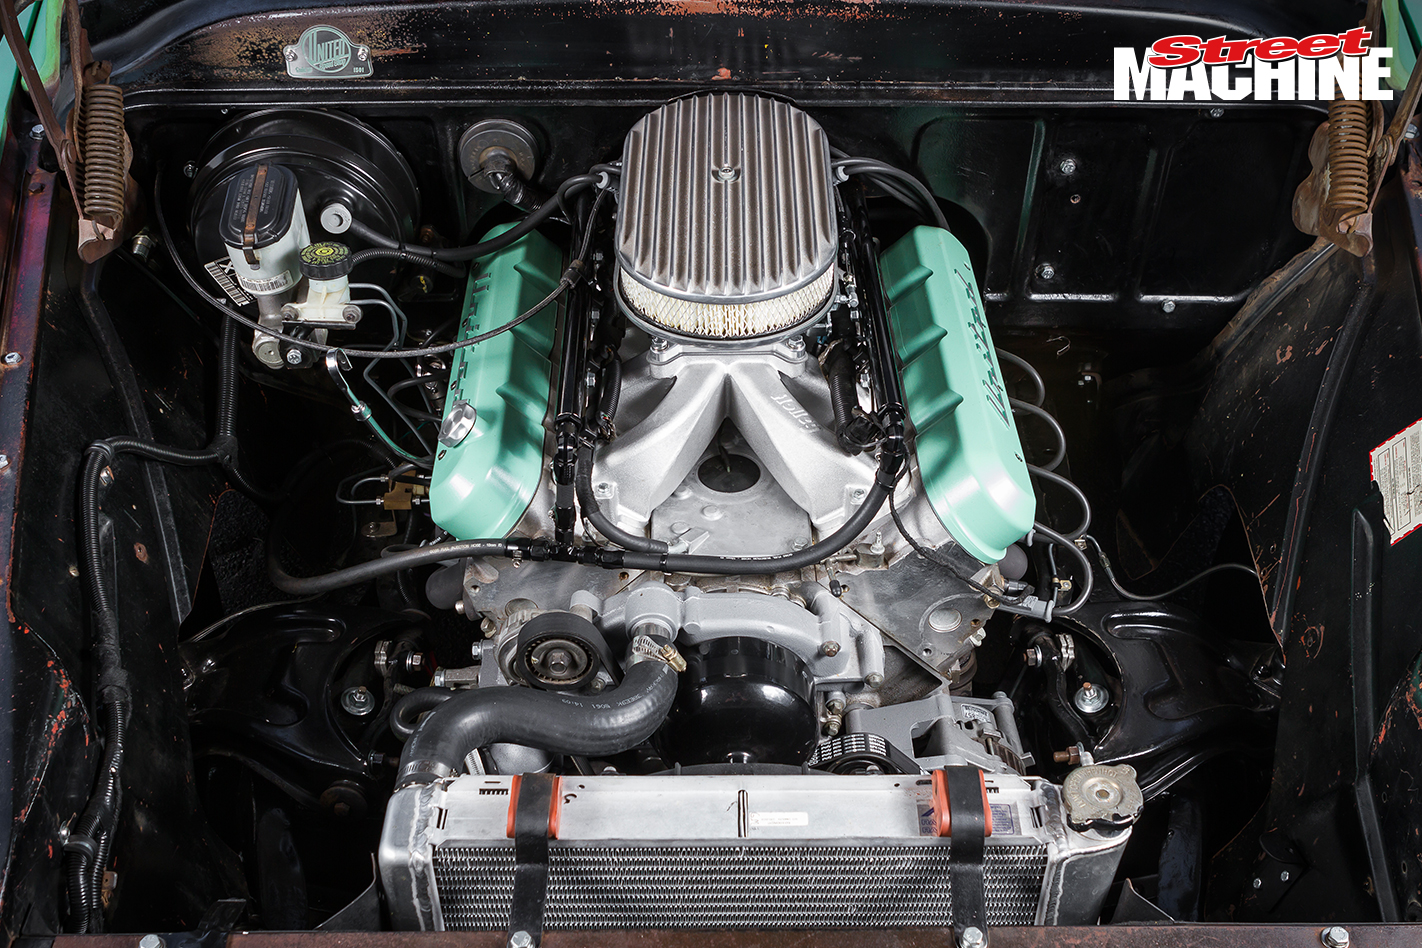 55 Chevy Pick Up Engine 3